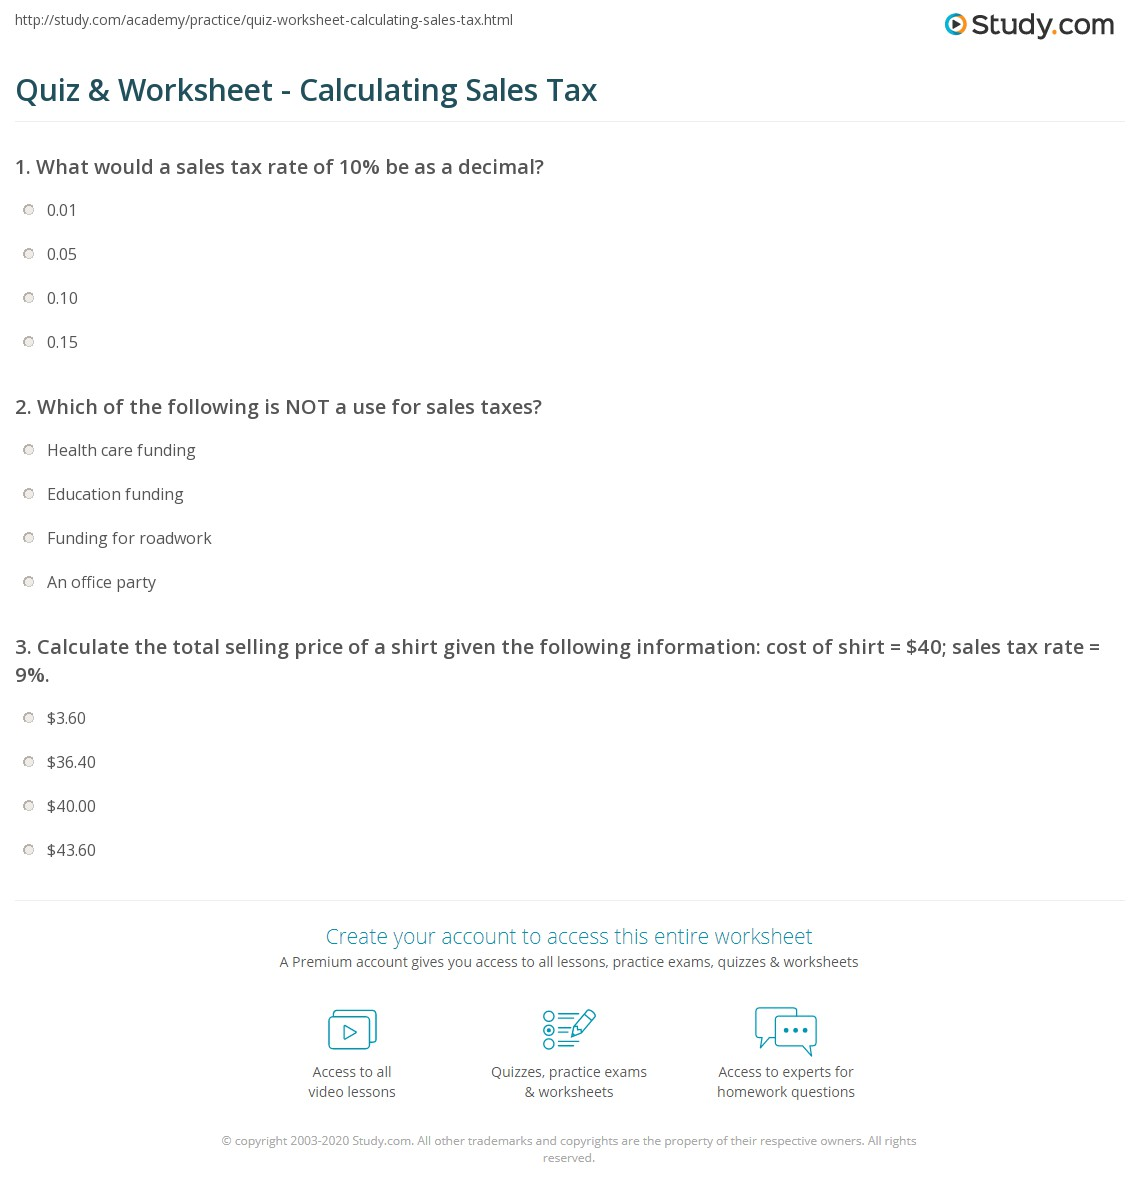 Quiz & Worksheet Calculating Sales Tax